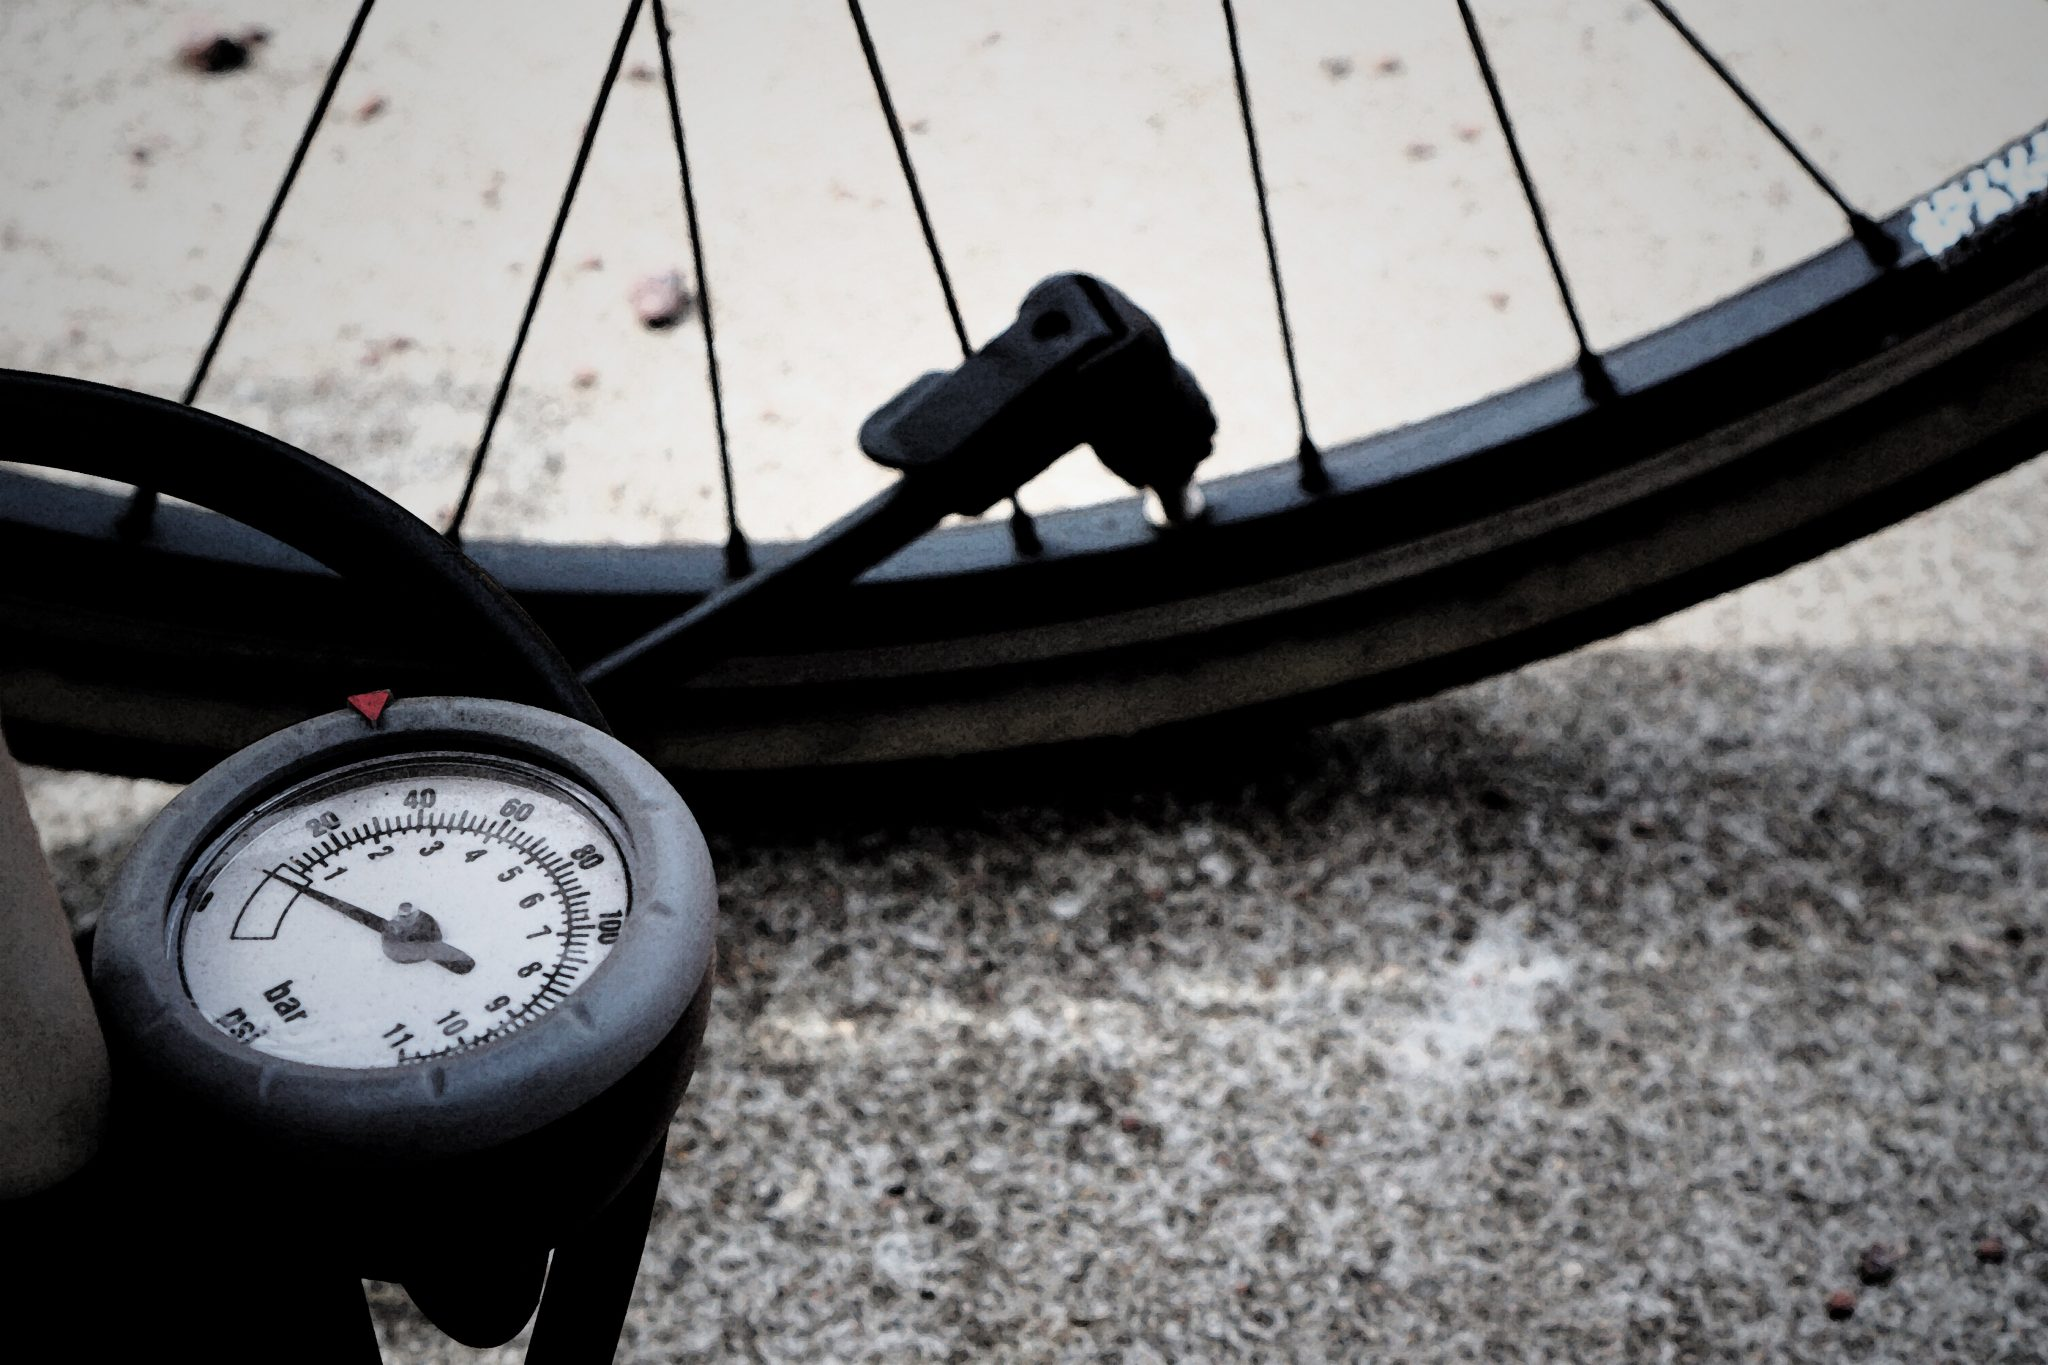 How To Attach A Bike Pump To Your Bike